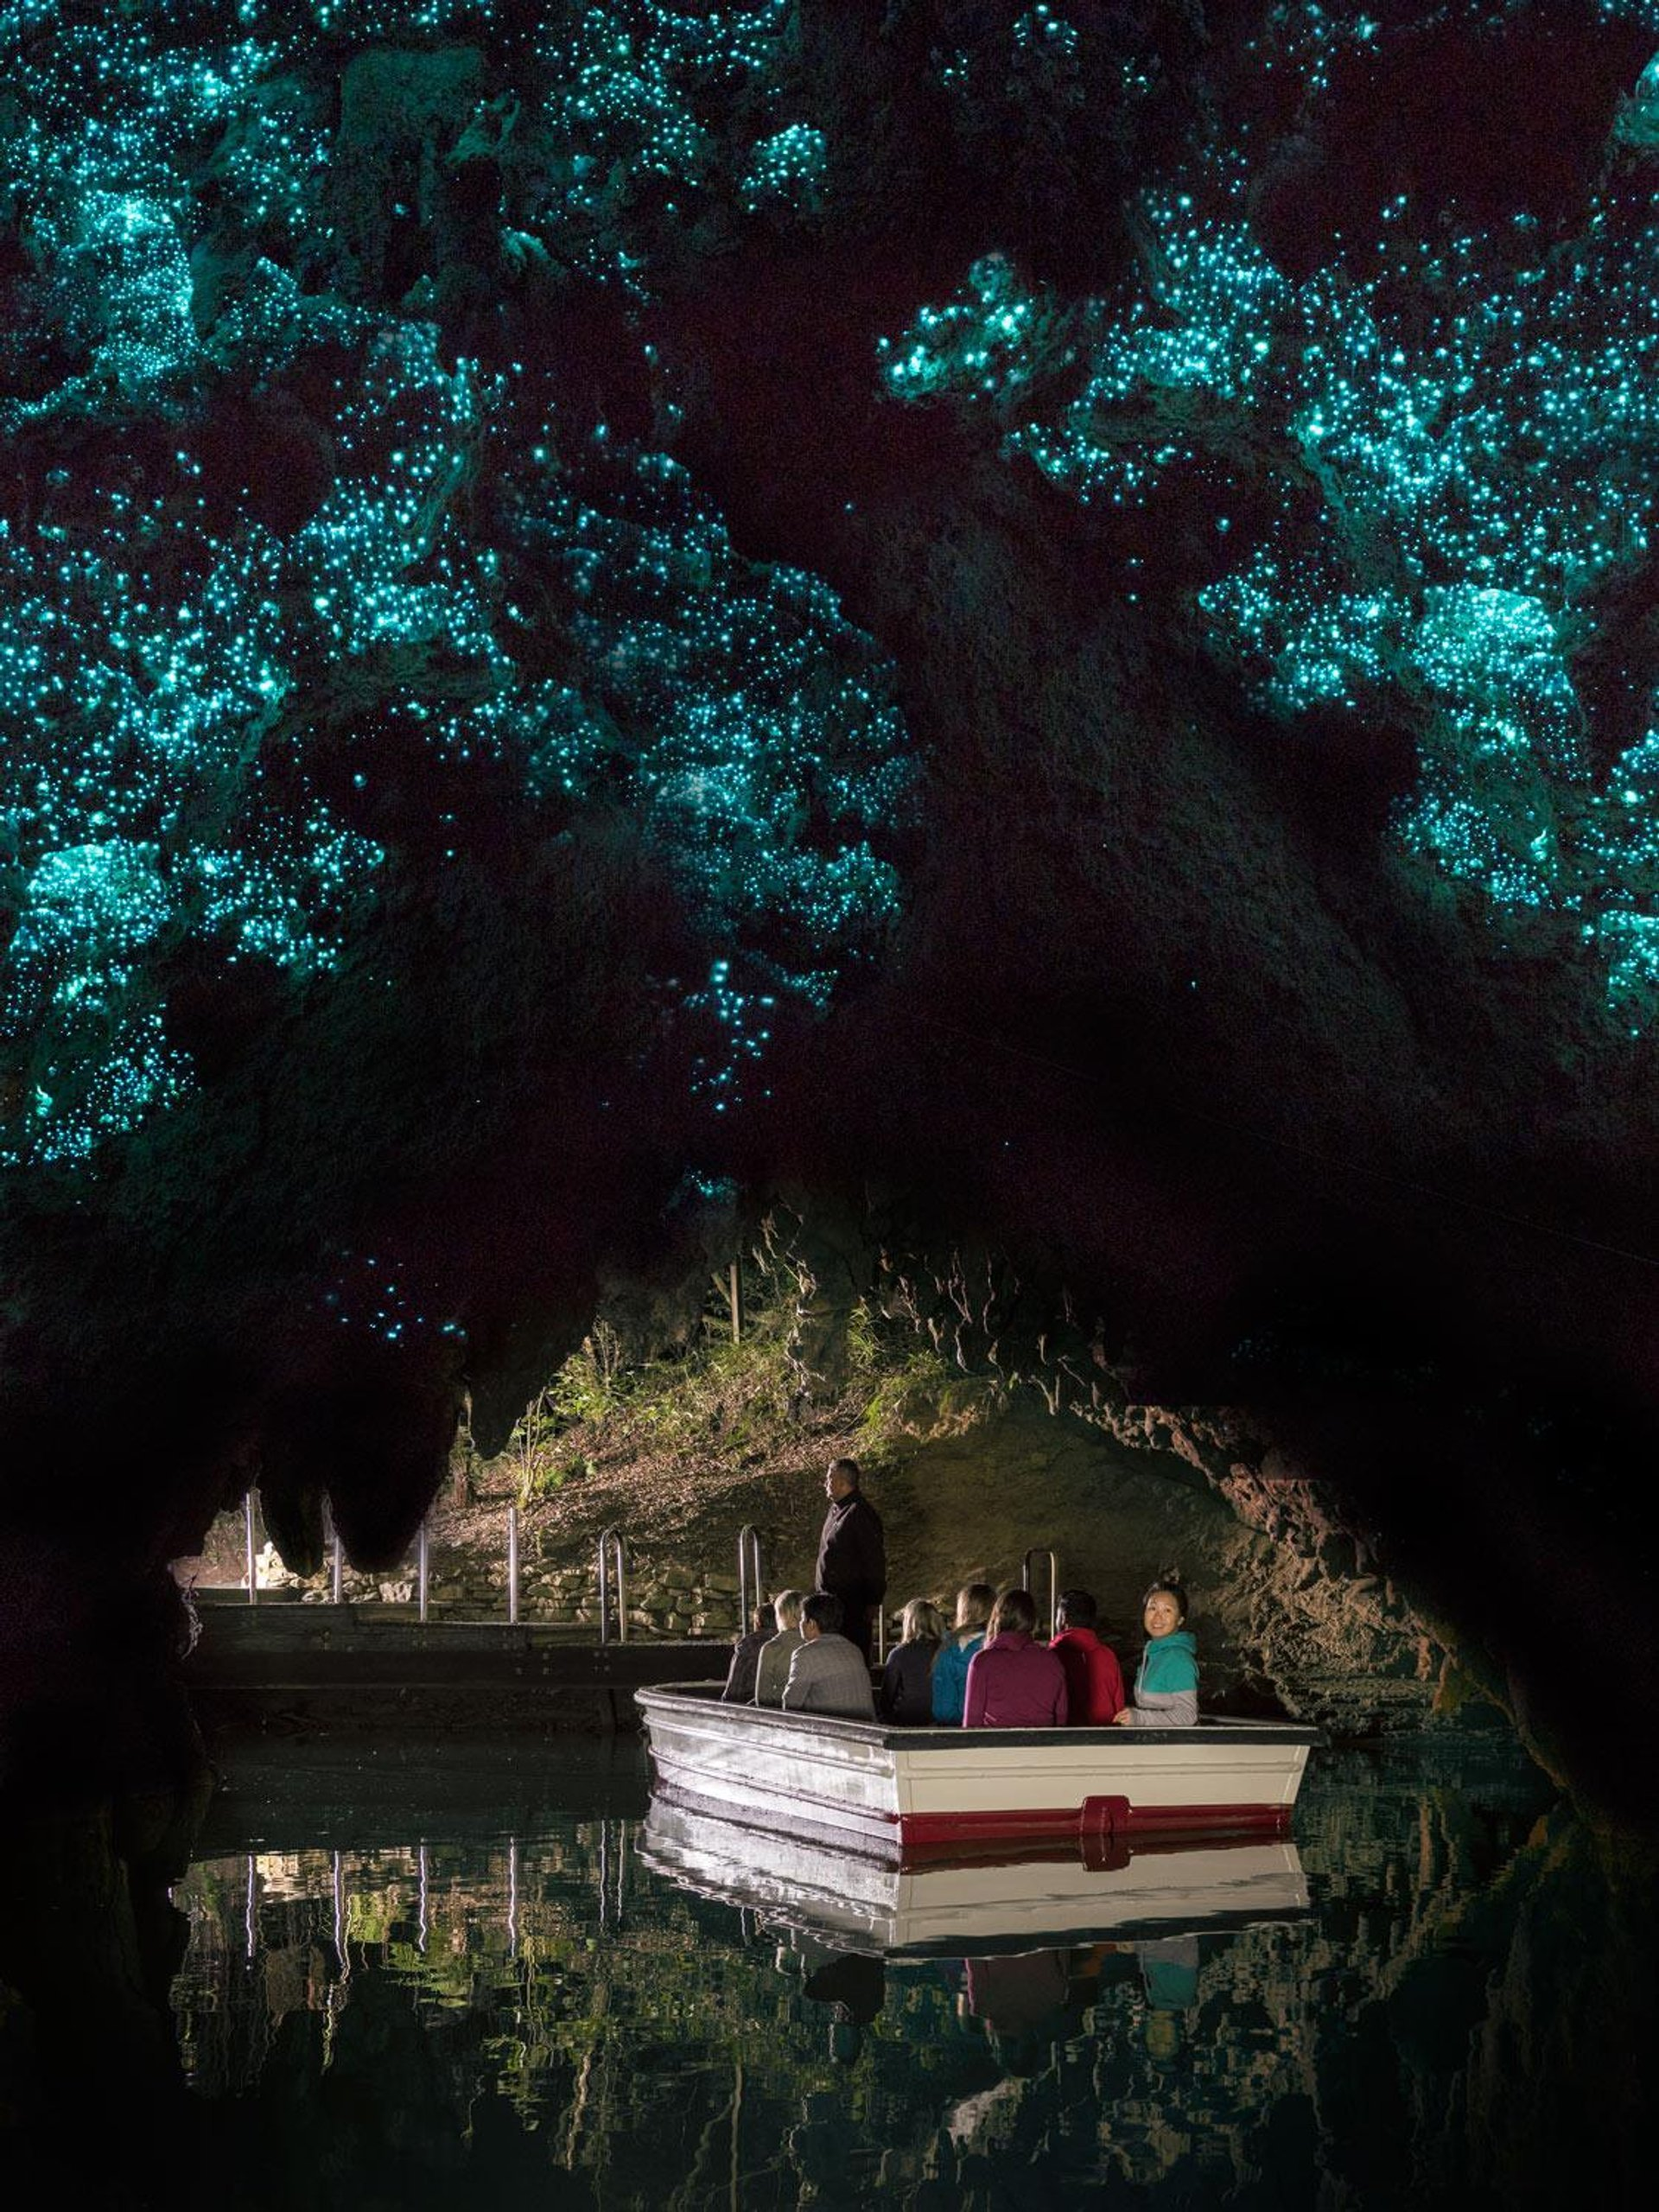 Waitomo Glowworm Caves in New Zealand - Best Season 2020